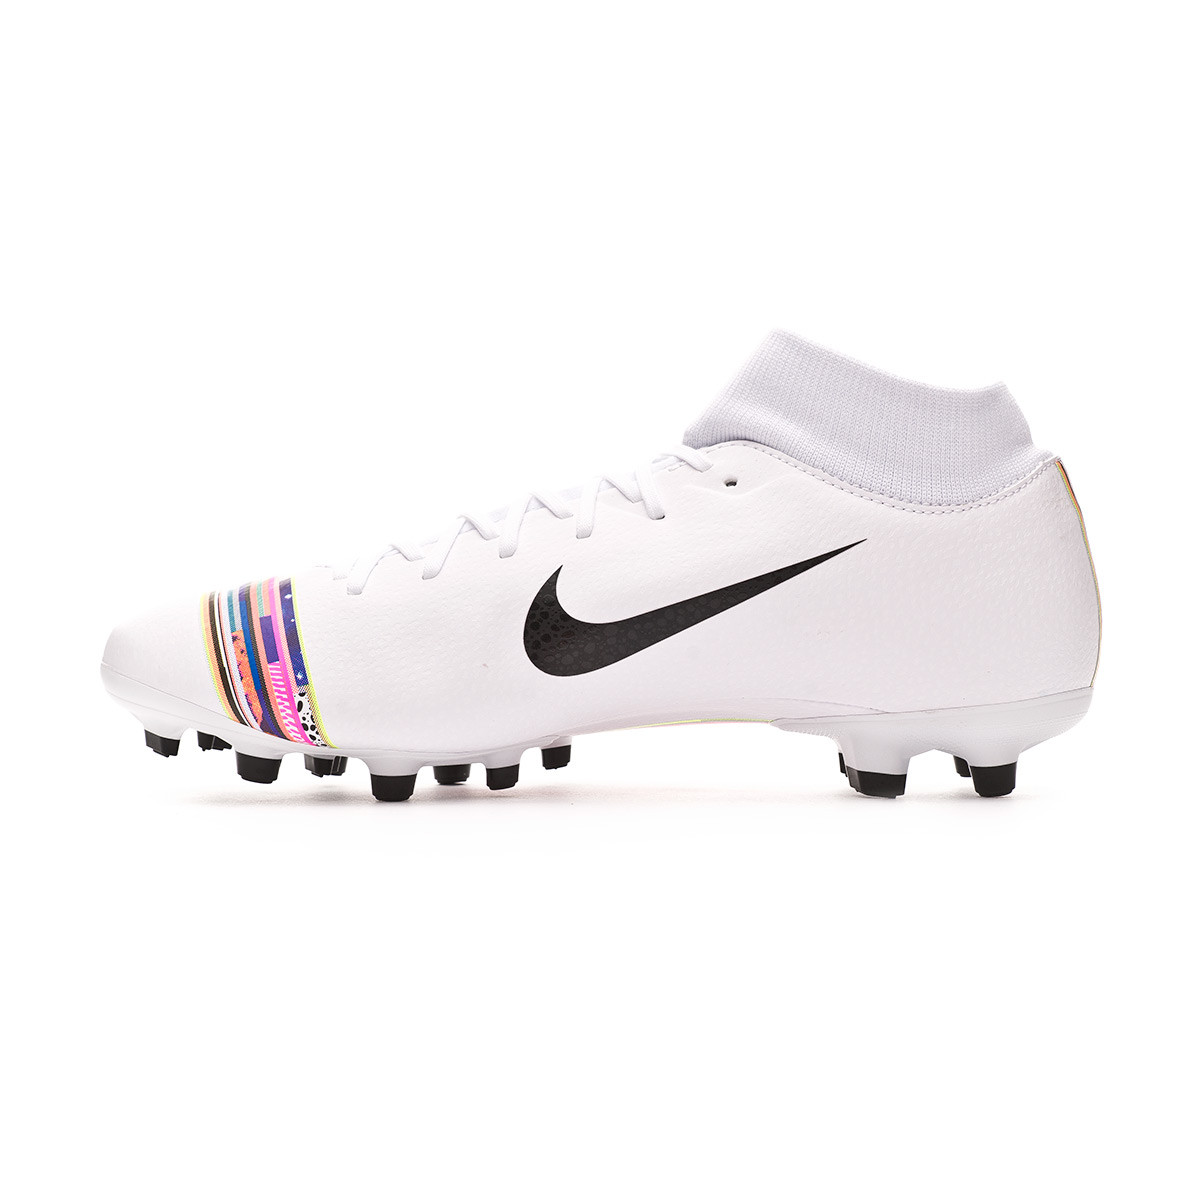 11ed375ba Football Boots Nike Mercurial Superfly VI Academy LVL UP MG  White-Black-Pure platinum - Football store Fútbol Emotion